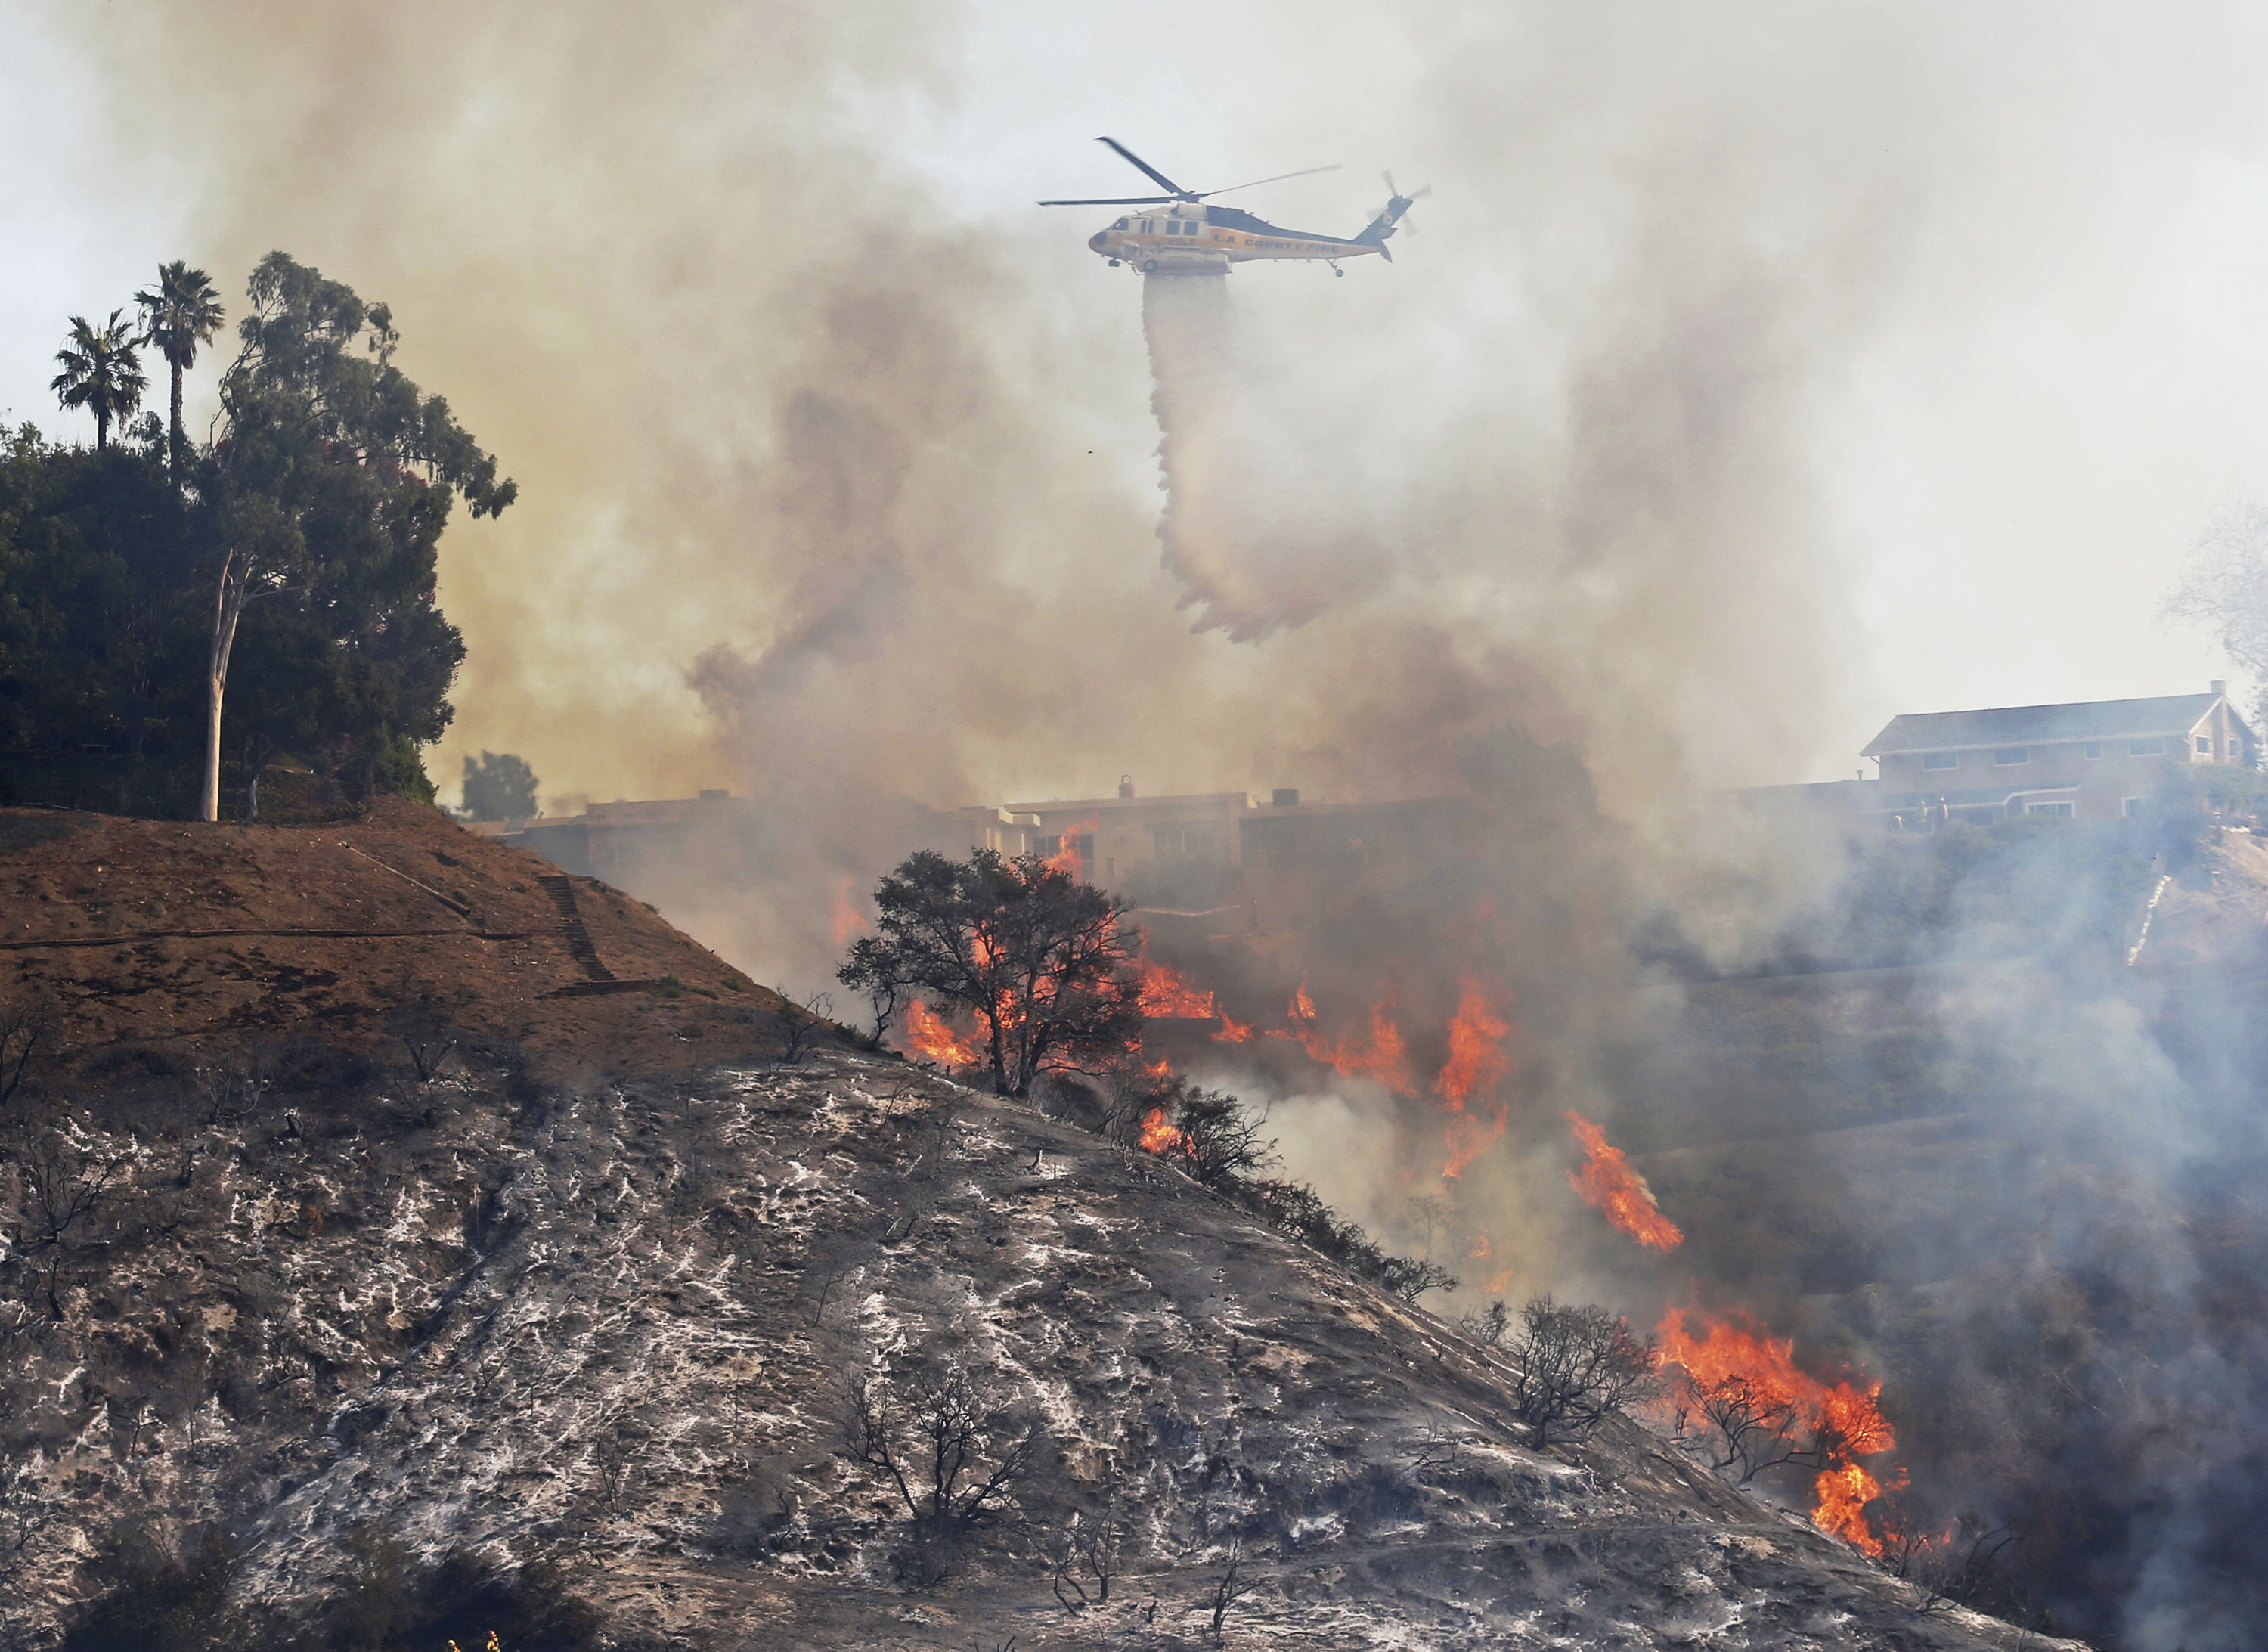 <div class='meta'><div class='origin-logo' data-origin='none'></div><span class='caption-text' data-credit='Reed Saxon/AP Photo'>A Los Angeles County Fire Dept. helicopter makes a water drop on flames sweeping up a steep canyon wall, threatening homes on a ridge line in the Bel Air district of Los Angeles.</span></div>